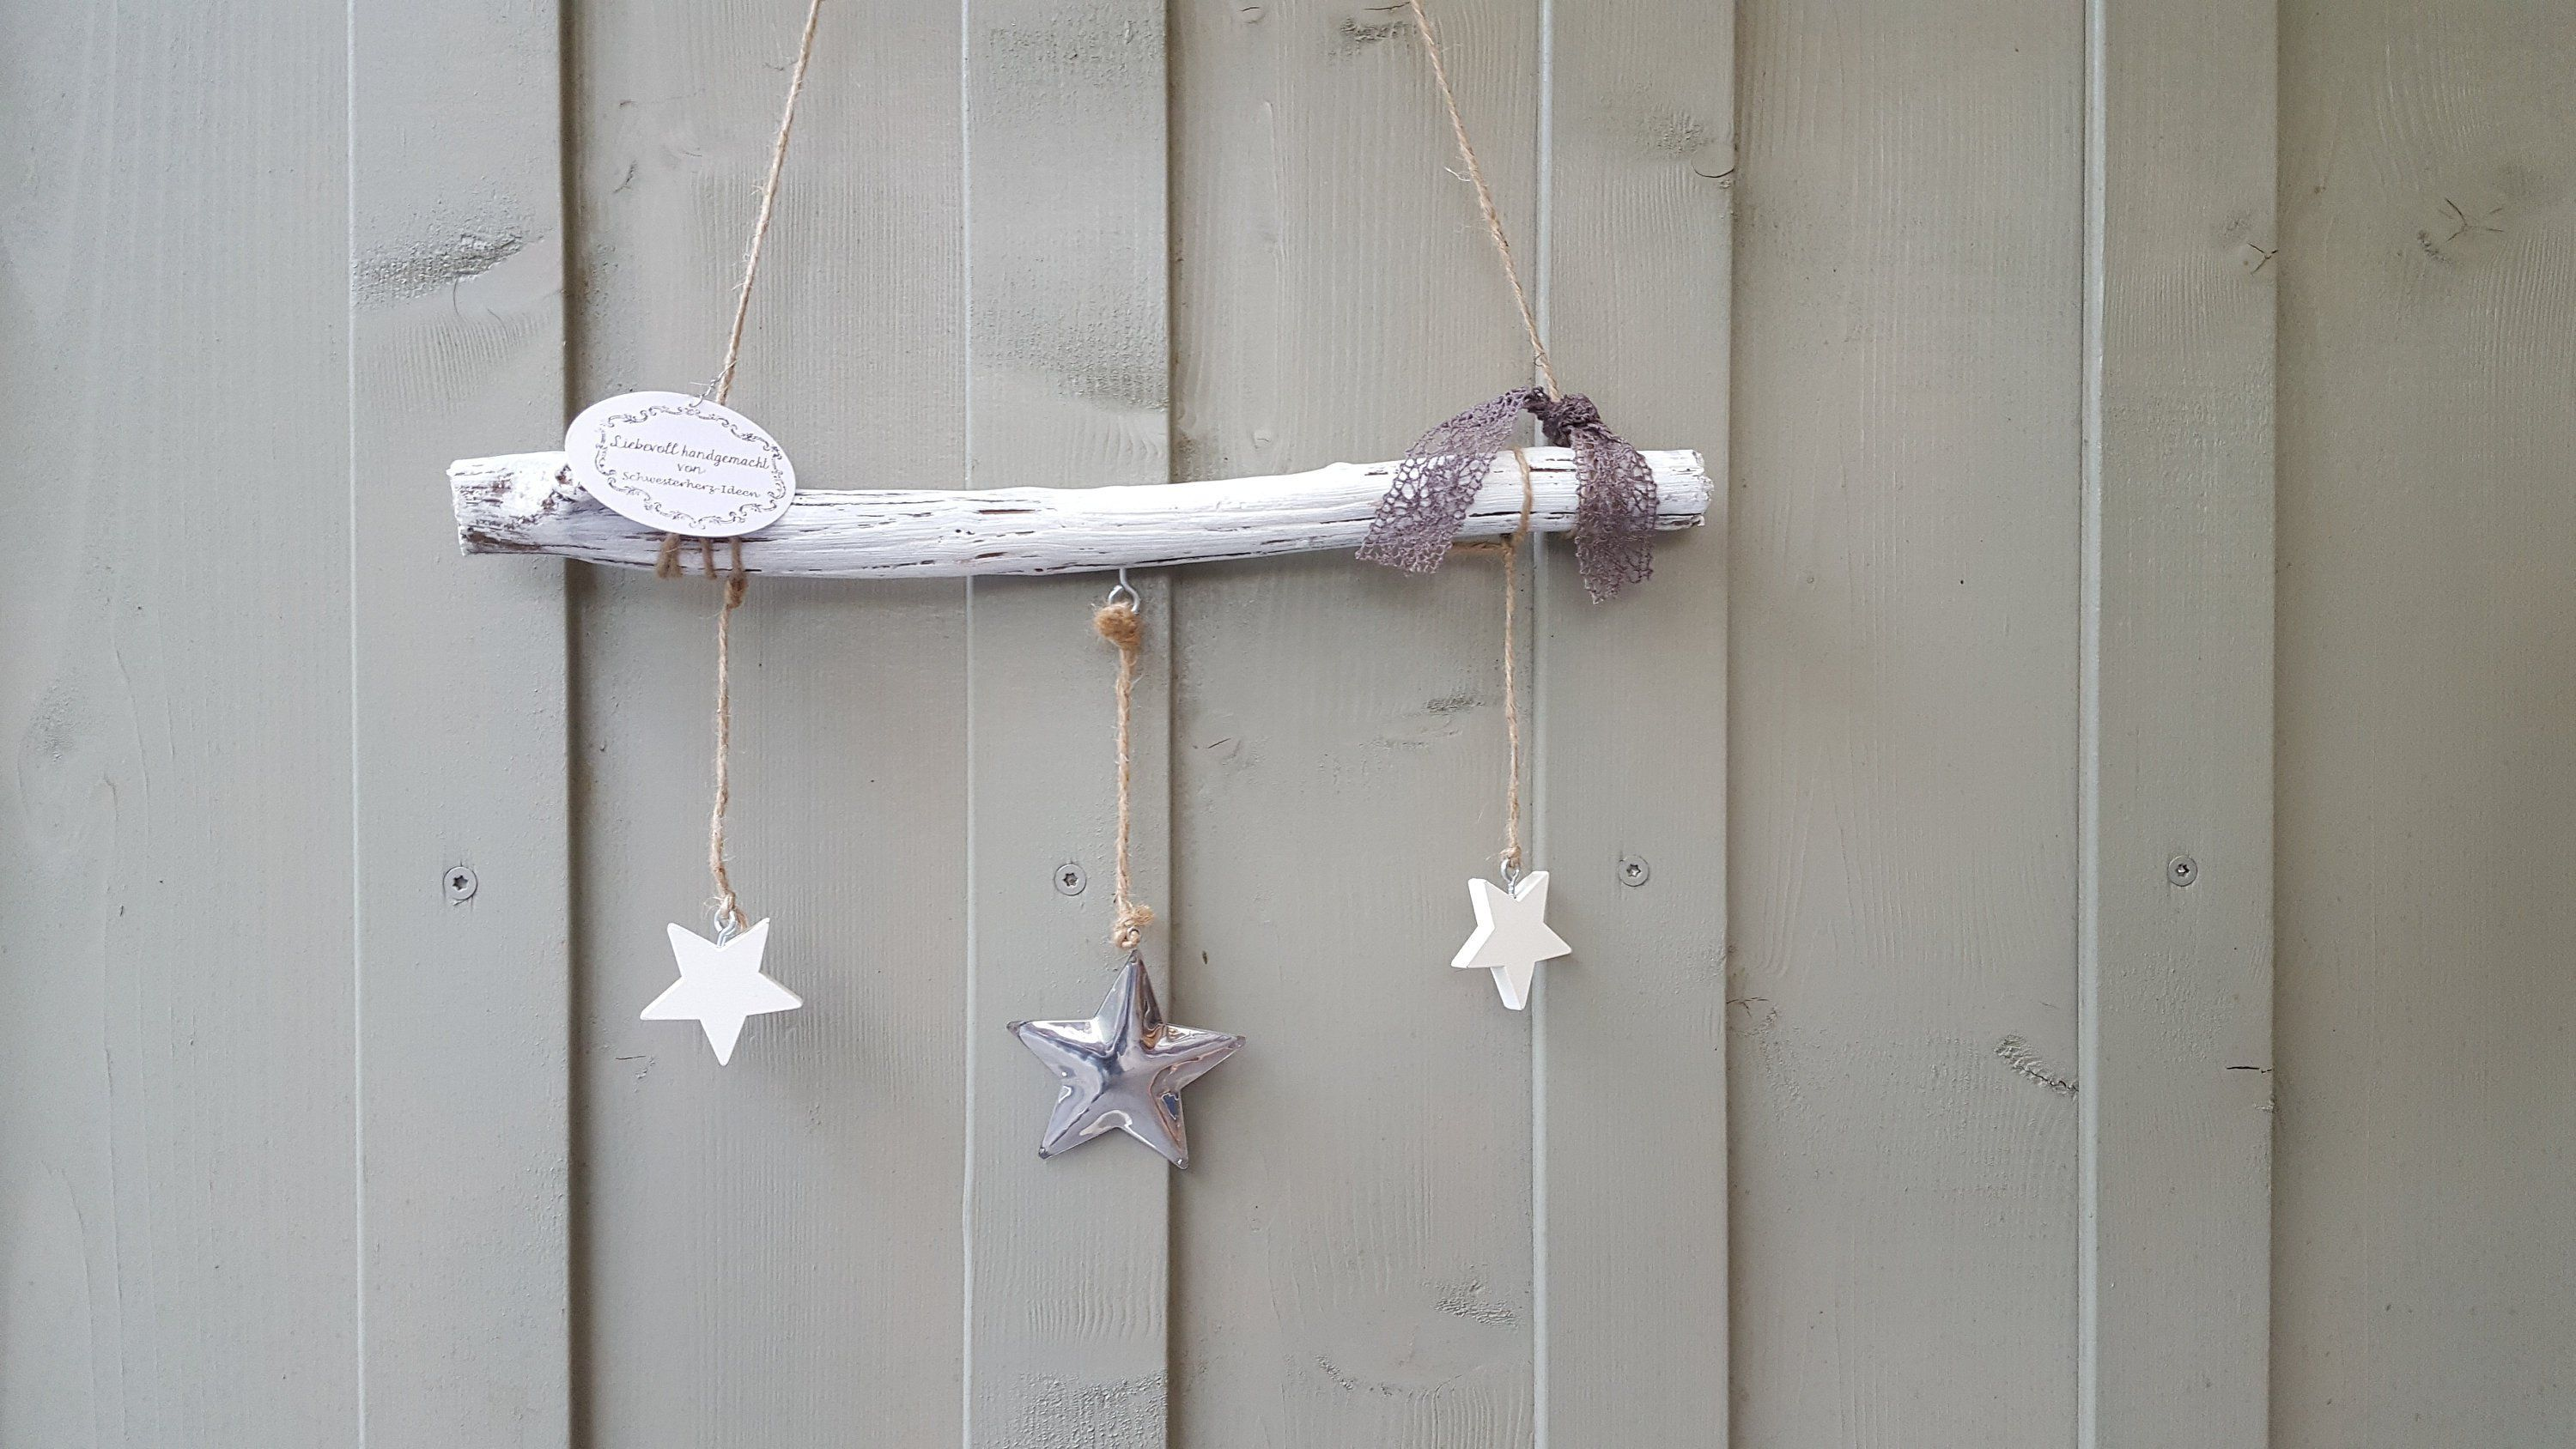 Hängedeko Fenster Window Decoration Stars In Shabby Look Vintage Decoration For